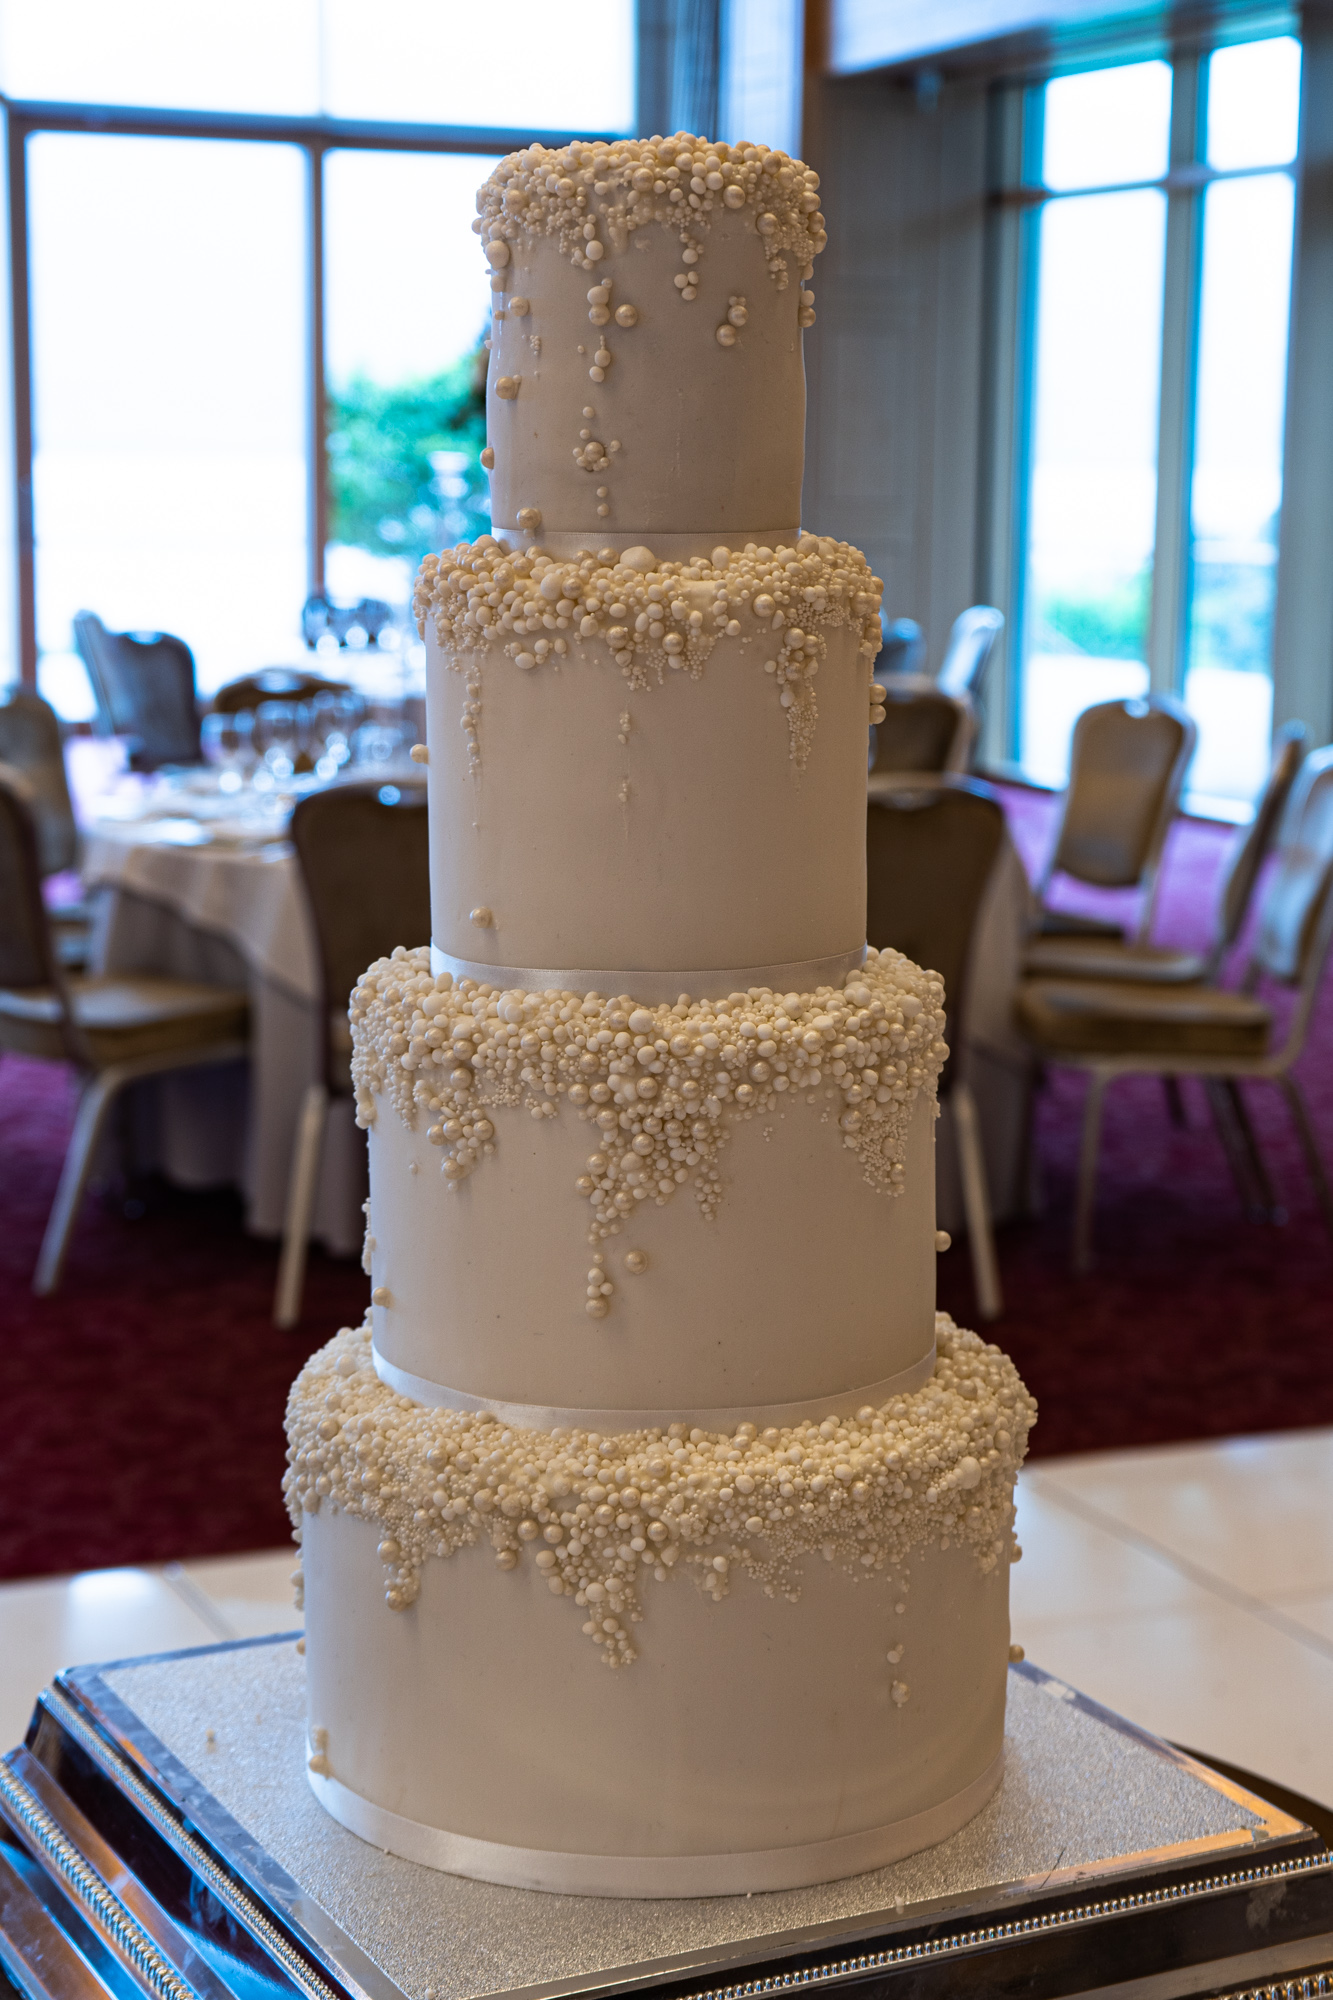 White wedding cake with pearl decorations